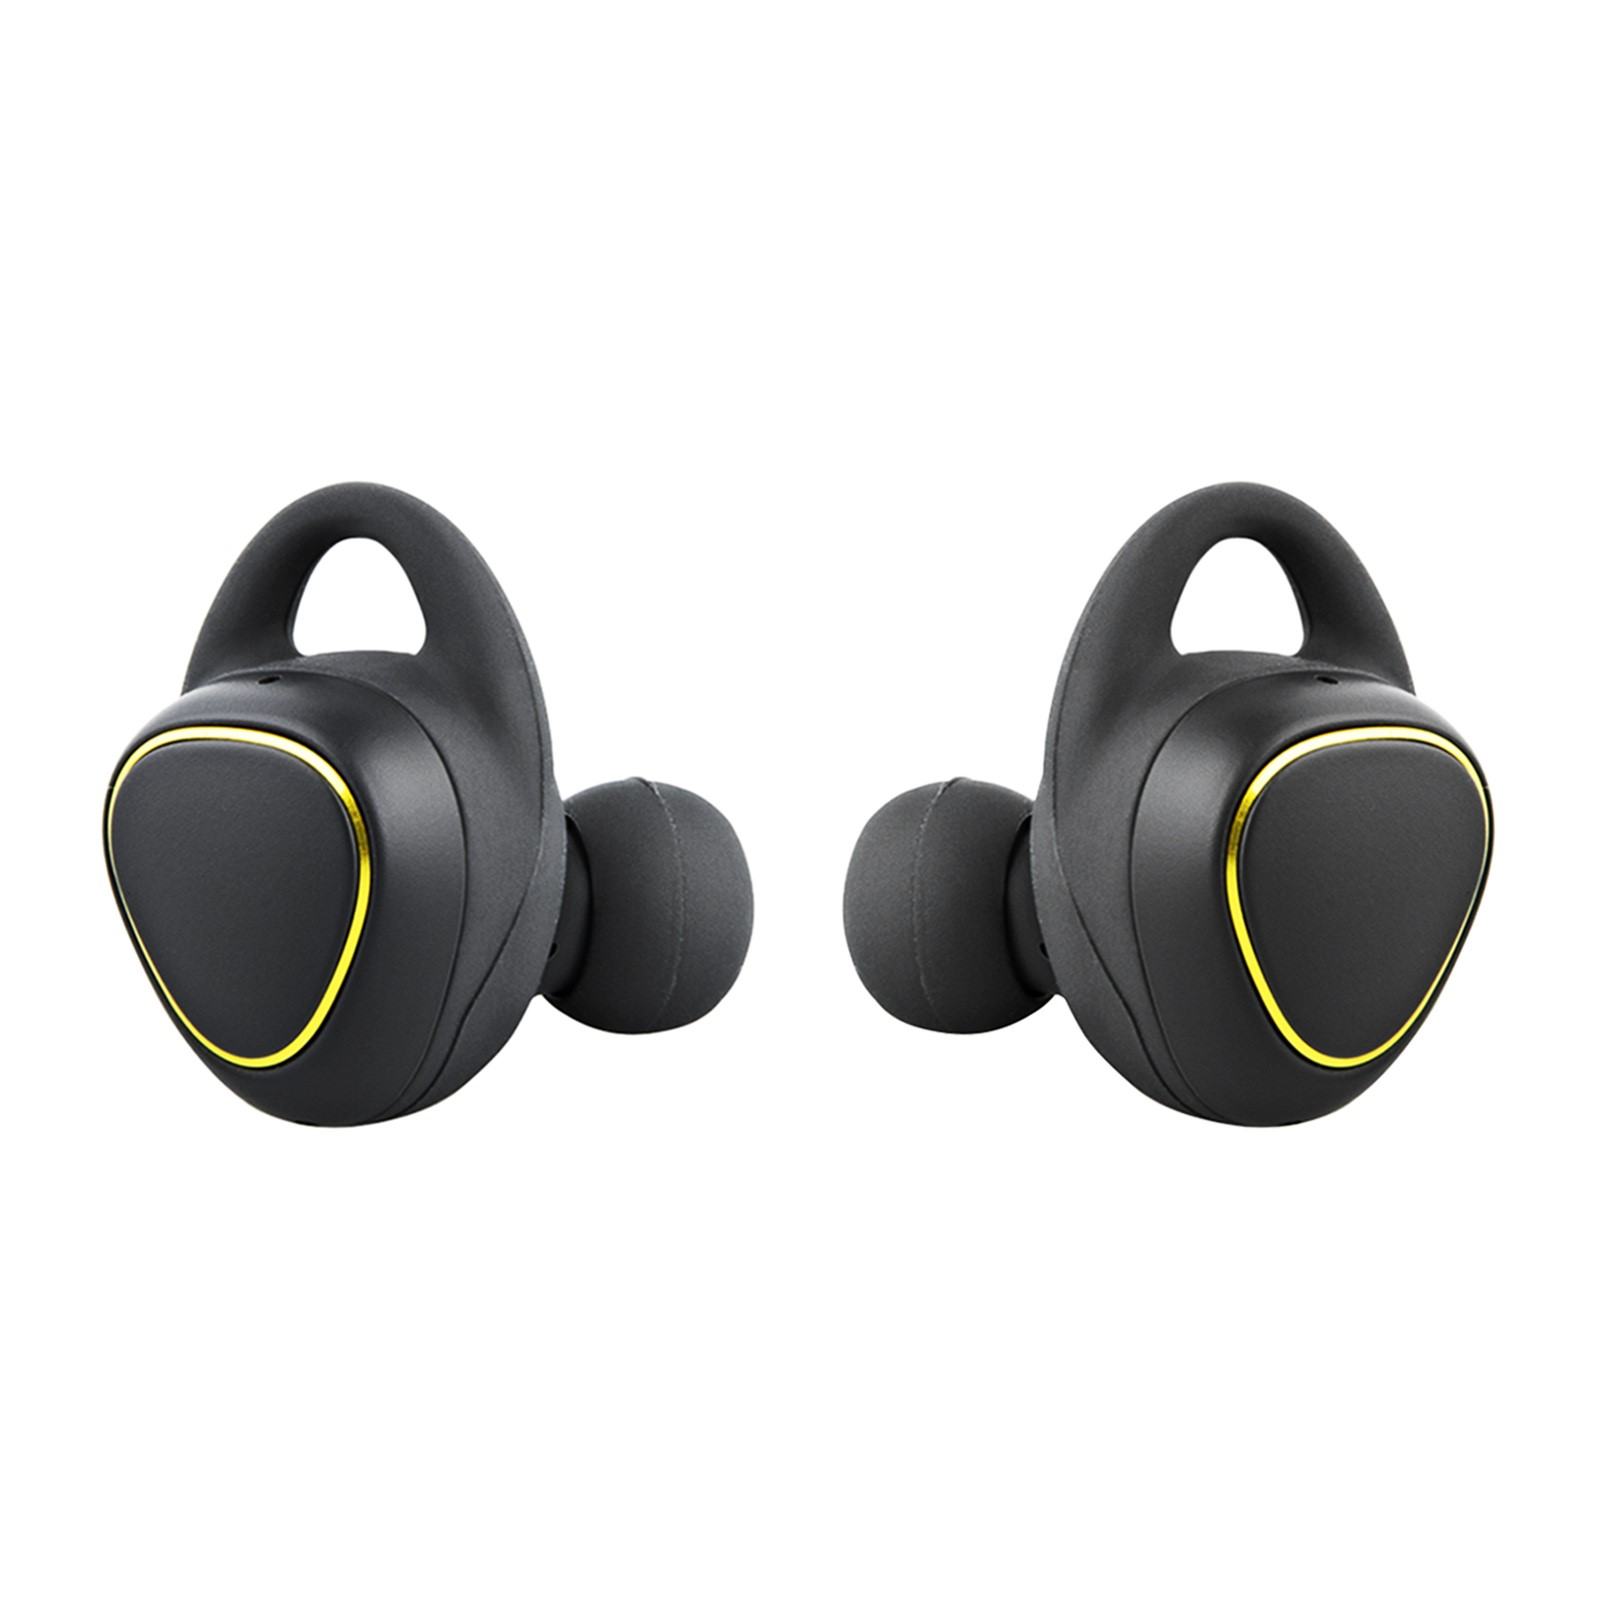 Samsung Gear IconX Cordfree Fitness Earbuds with Activity Tracker (Black) SAM-ICONX-BK-A2